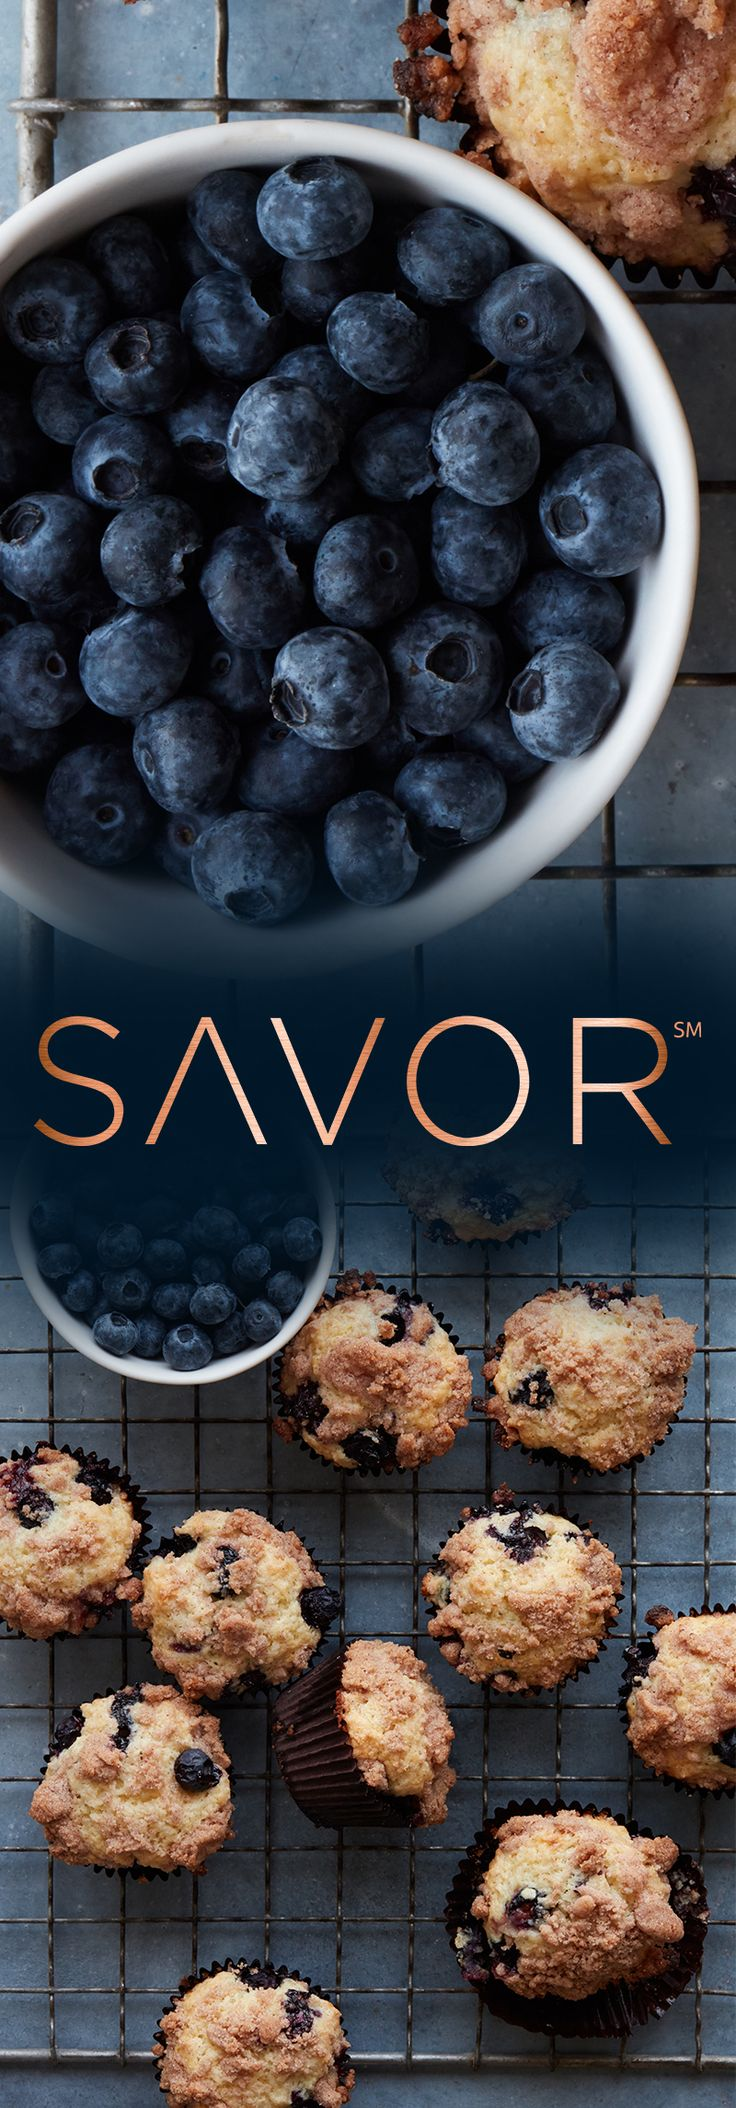 24 Best Capital One Savor Card Images On Pinterest Recipes For